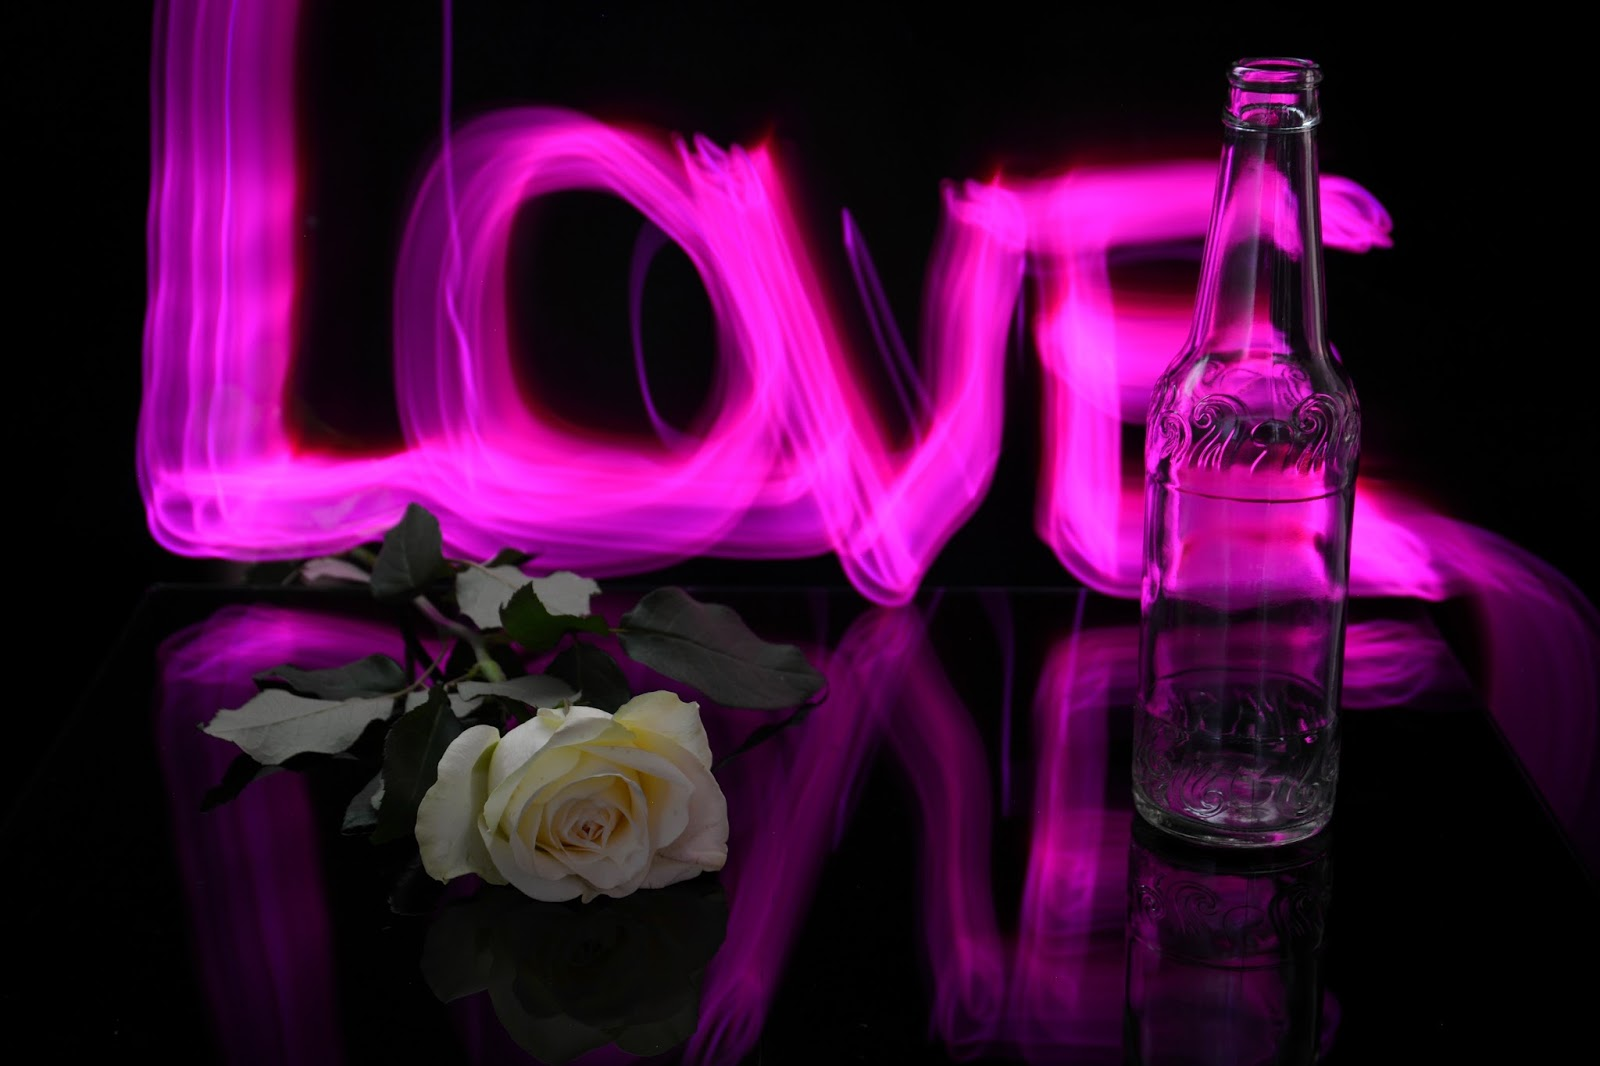 "painting with light ""Love"" in the background of a rose and a bottle on a mirror"